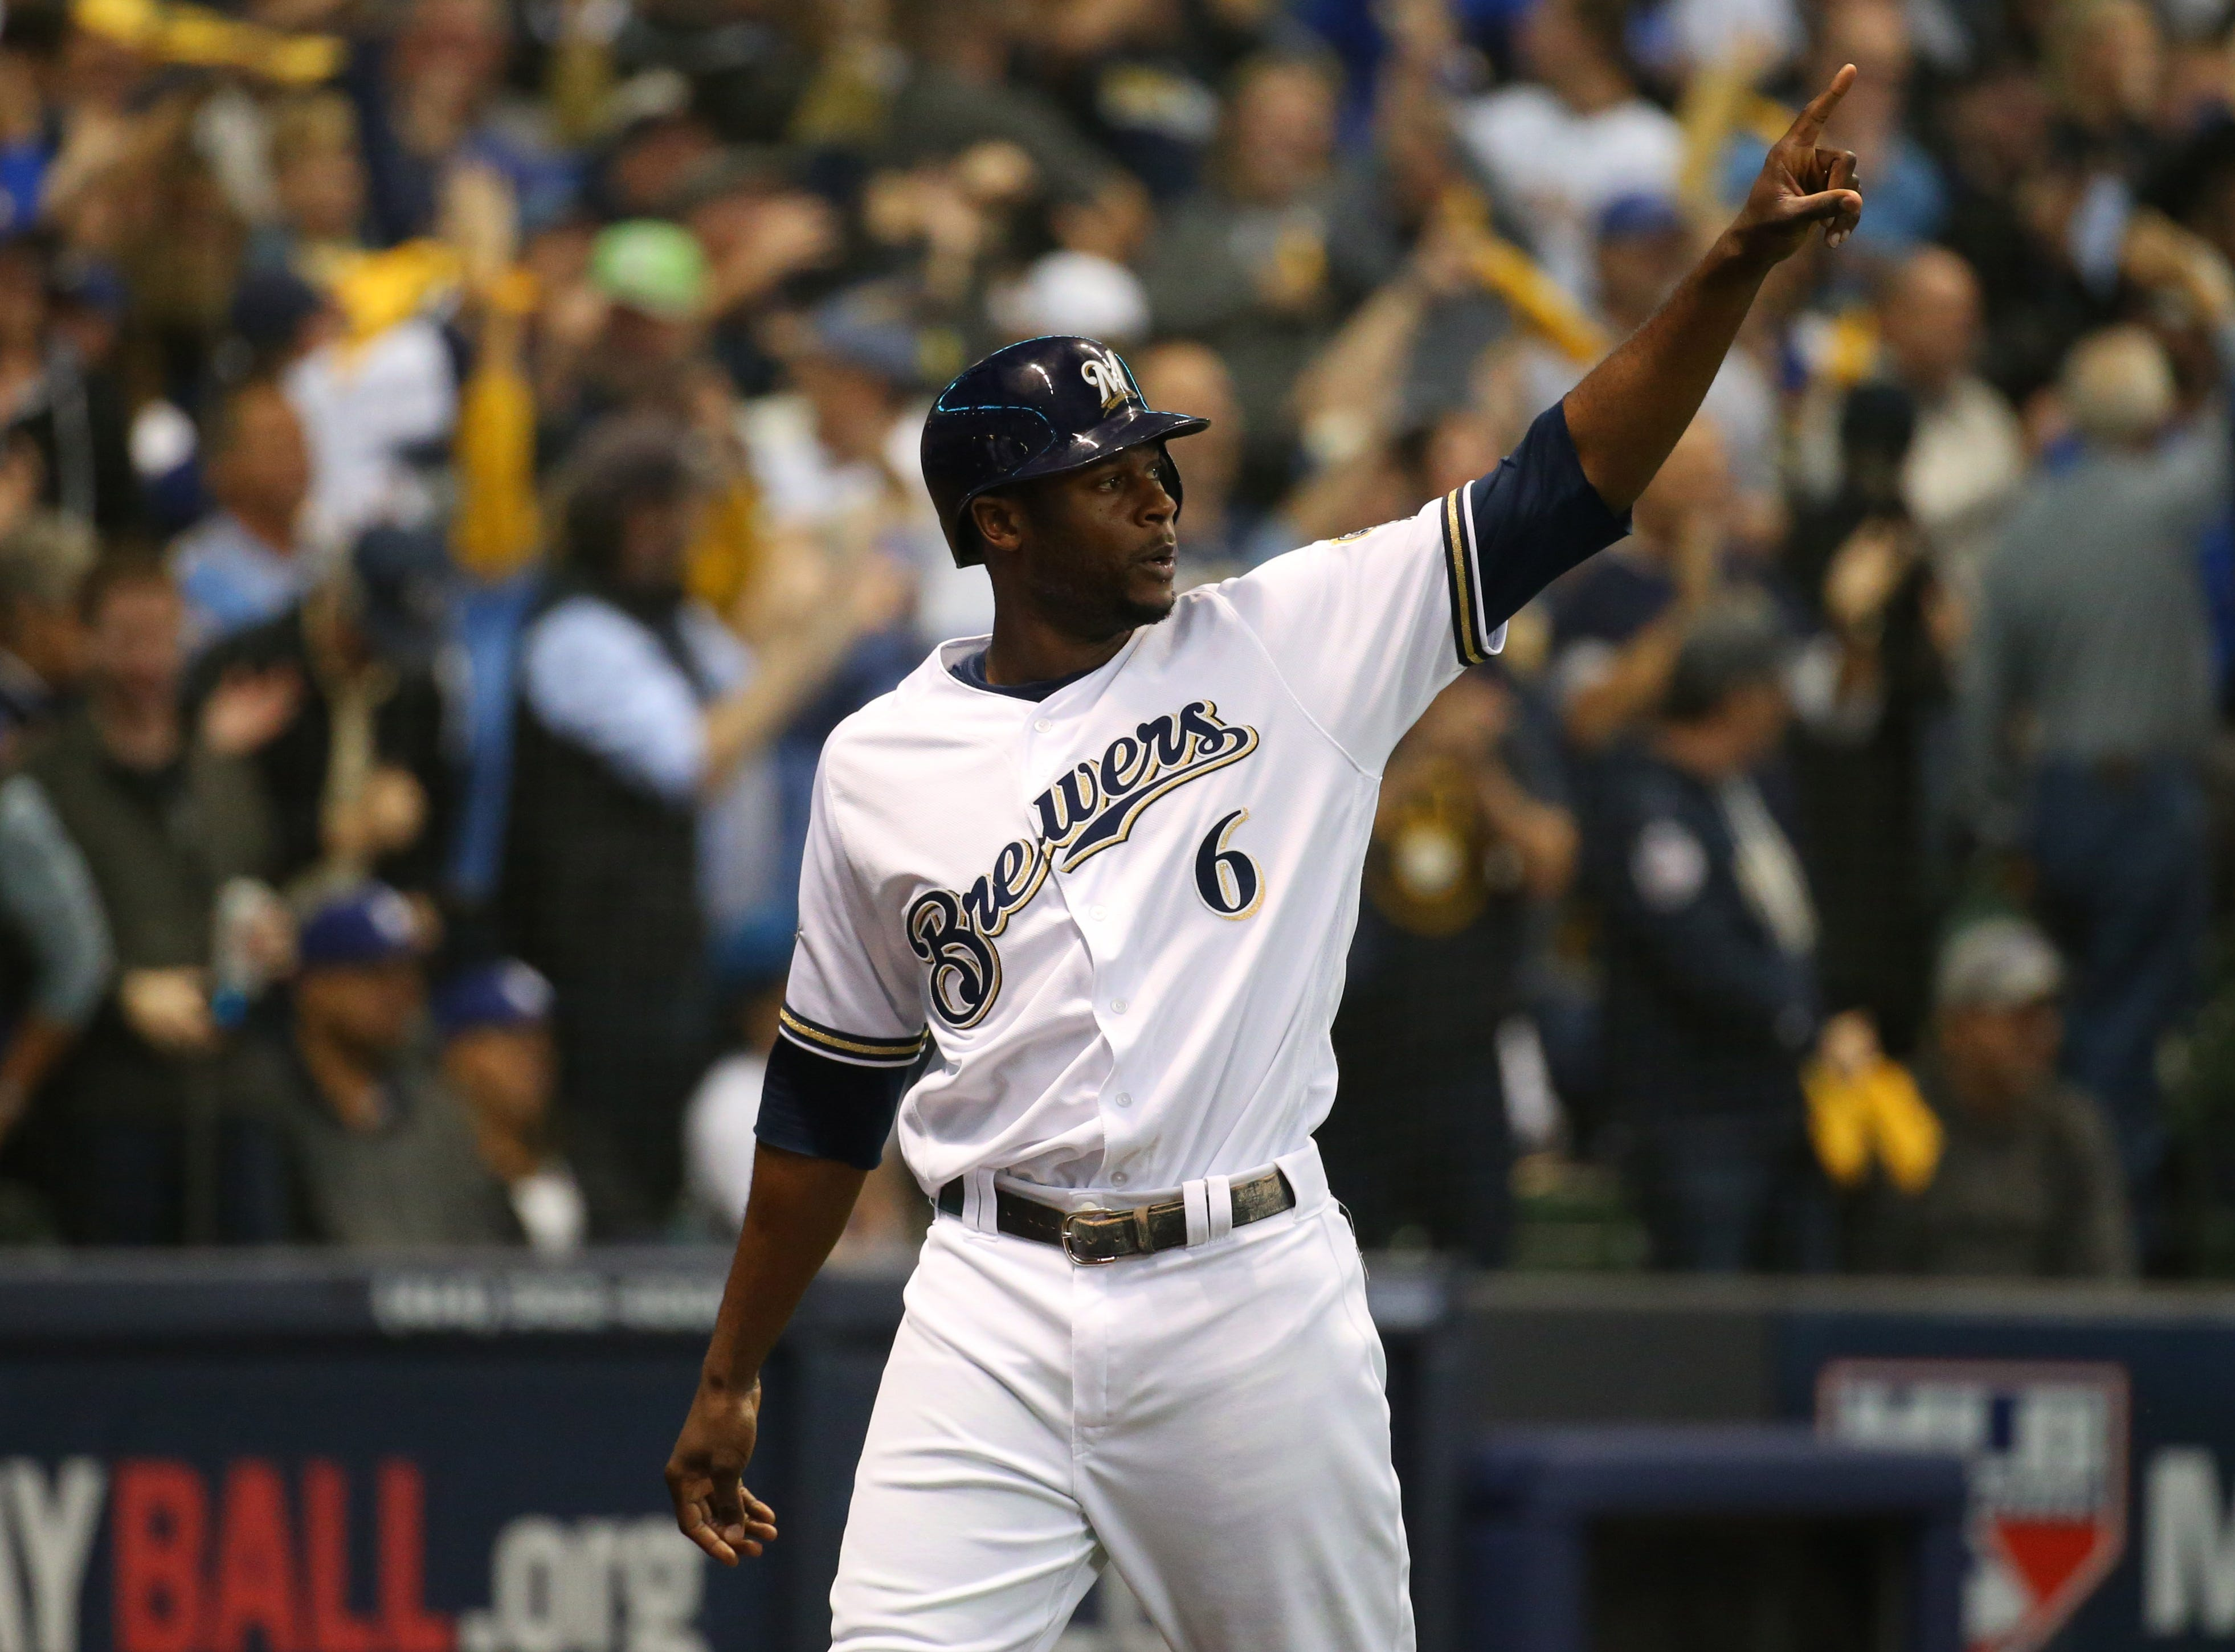 47. Lorenzo Cain, Milwaukee Brewers outfielder.